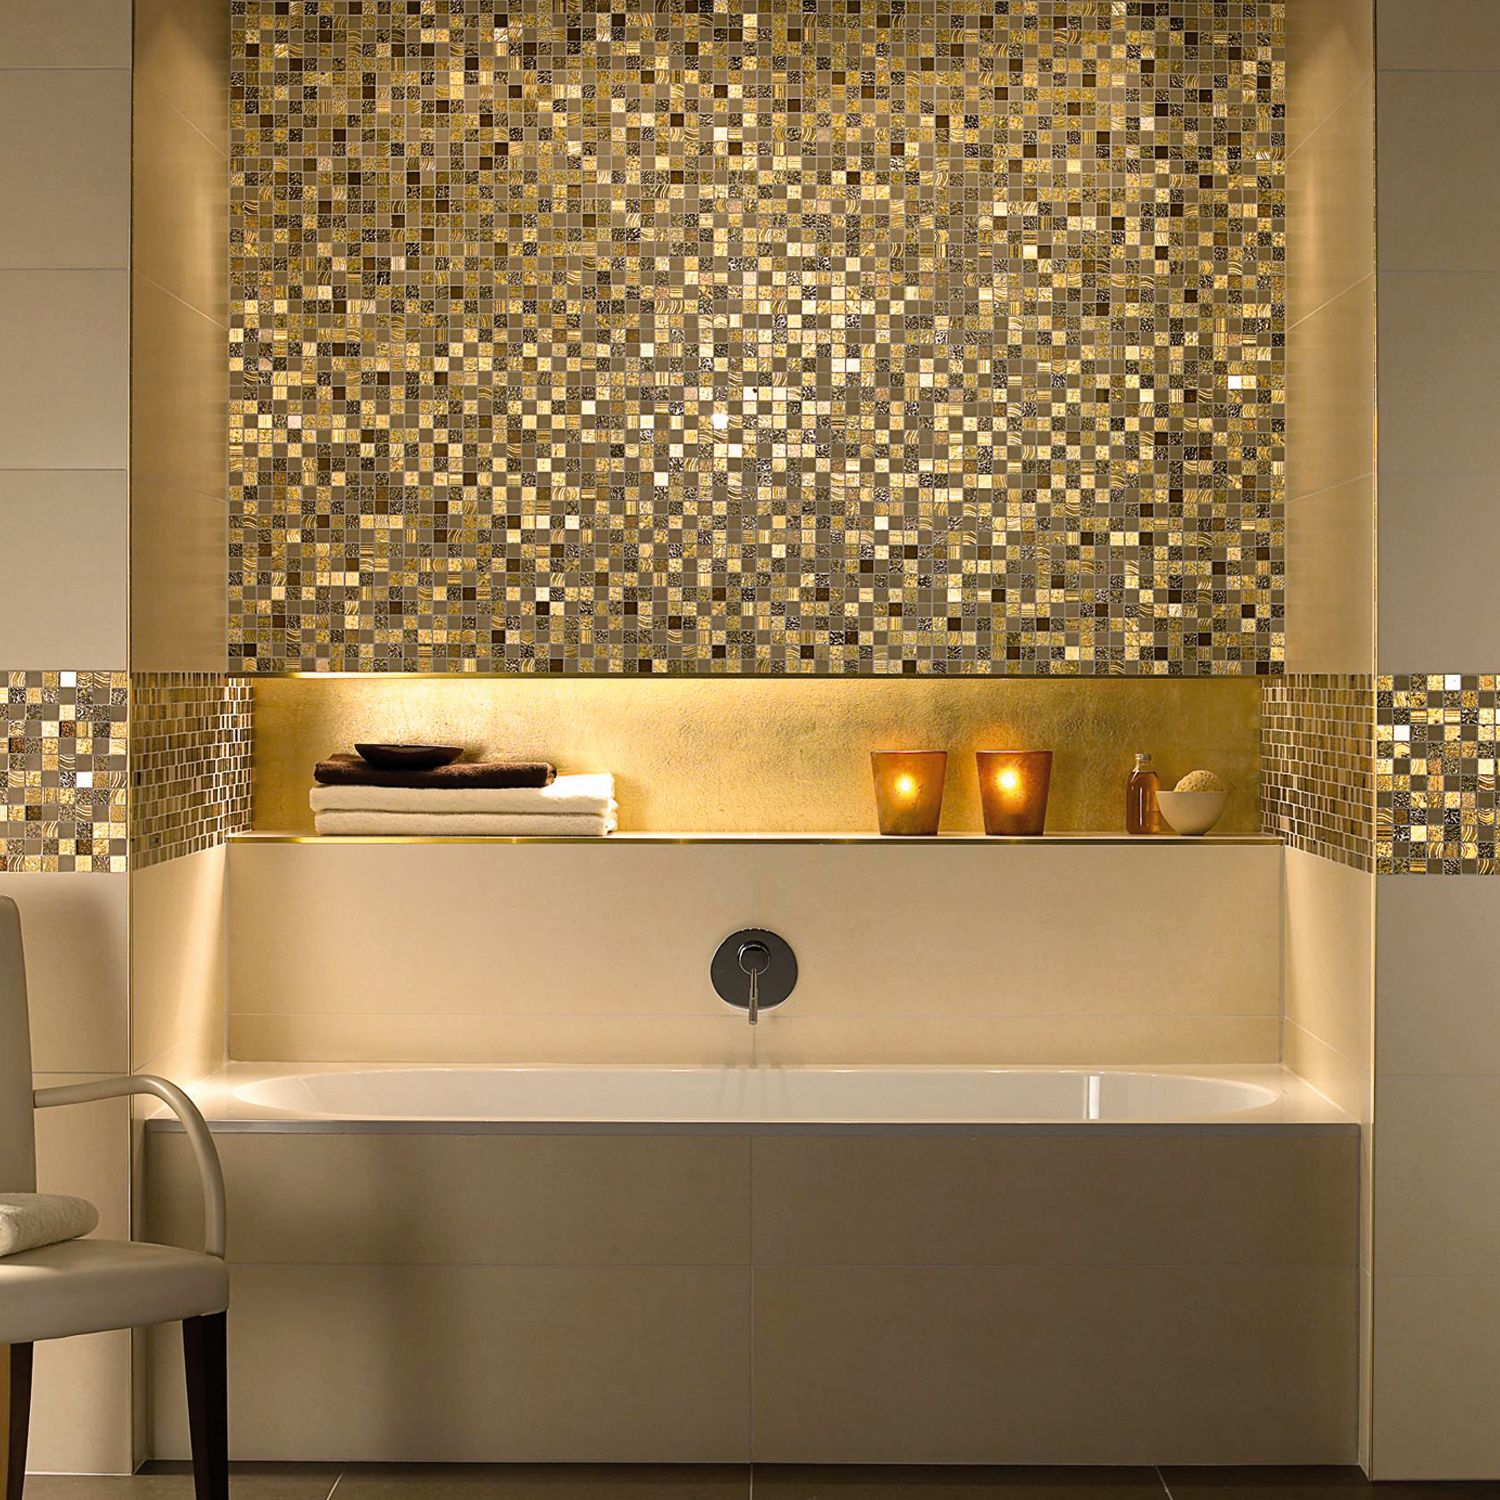 bathroom, golden bathroom, gold,maison valentina, bathub, mirror, rug, tap, bathroom decoration, bathroom decor bathroom design Add a Touch of Gold to Your Bathroom – 5 Ideas to Make it Shine 5 ideas to add a touch of gold to your bathroom  Schluter